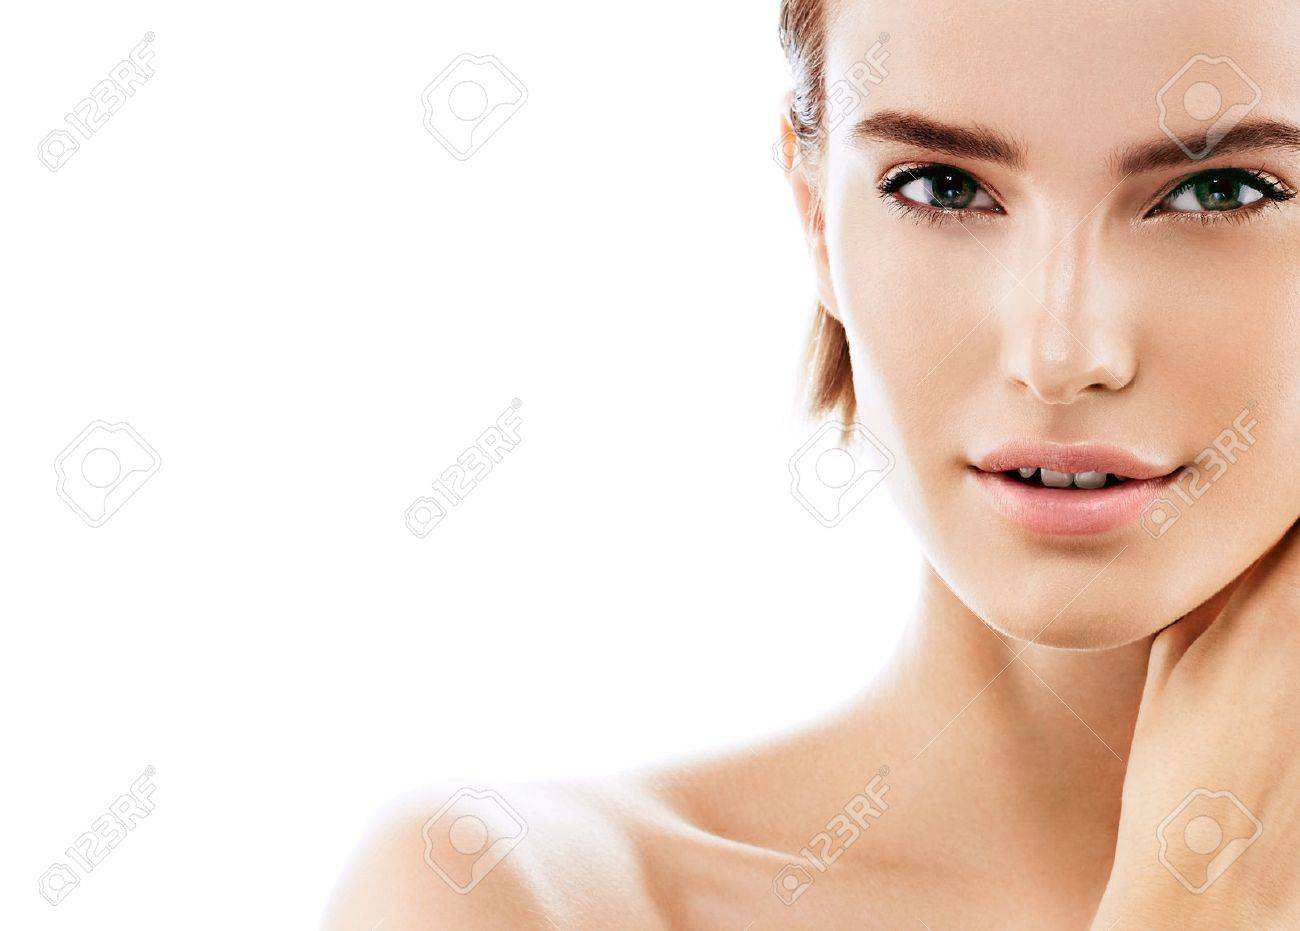 Beauty Woman face Portrait. Beautiful model Girl with Perfect Fresh Clean Skin color lips purple red. Blonde brunette short hair Youth and Skin Care Concept. Isolated on a white background - 63467855